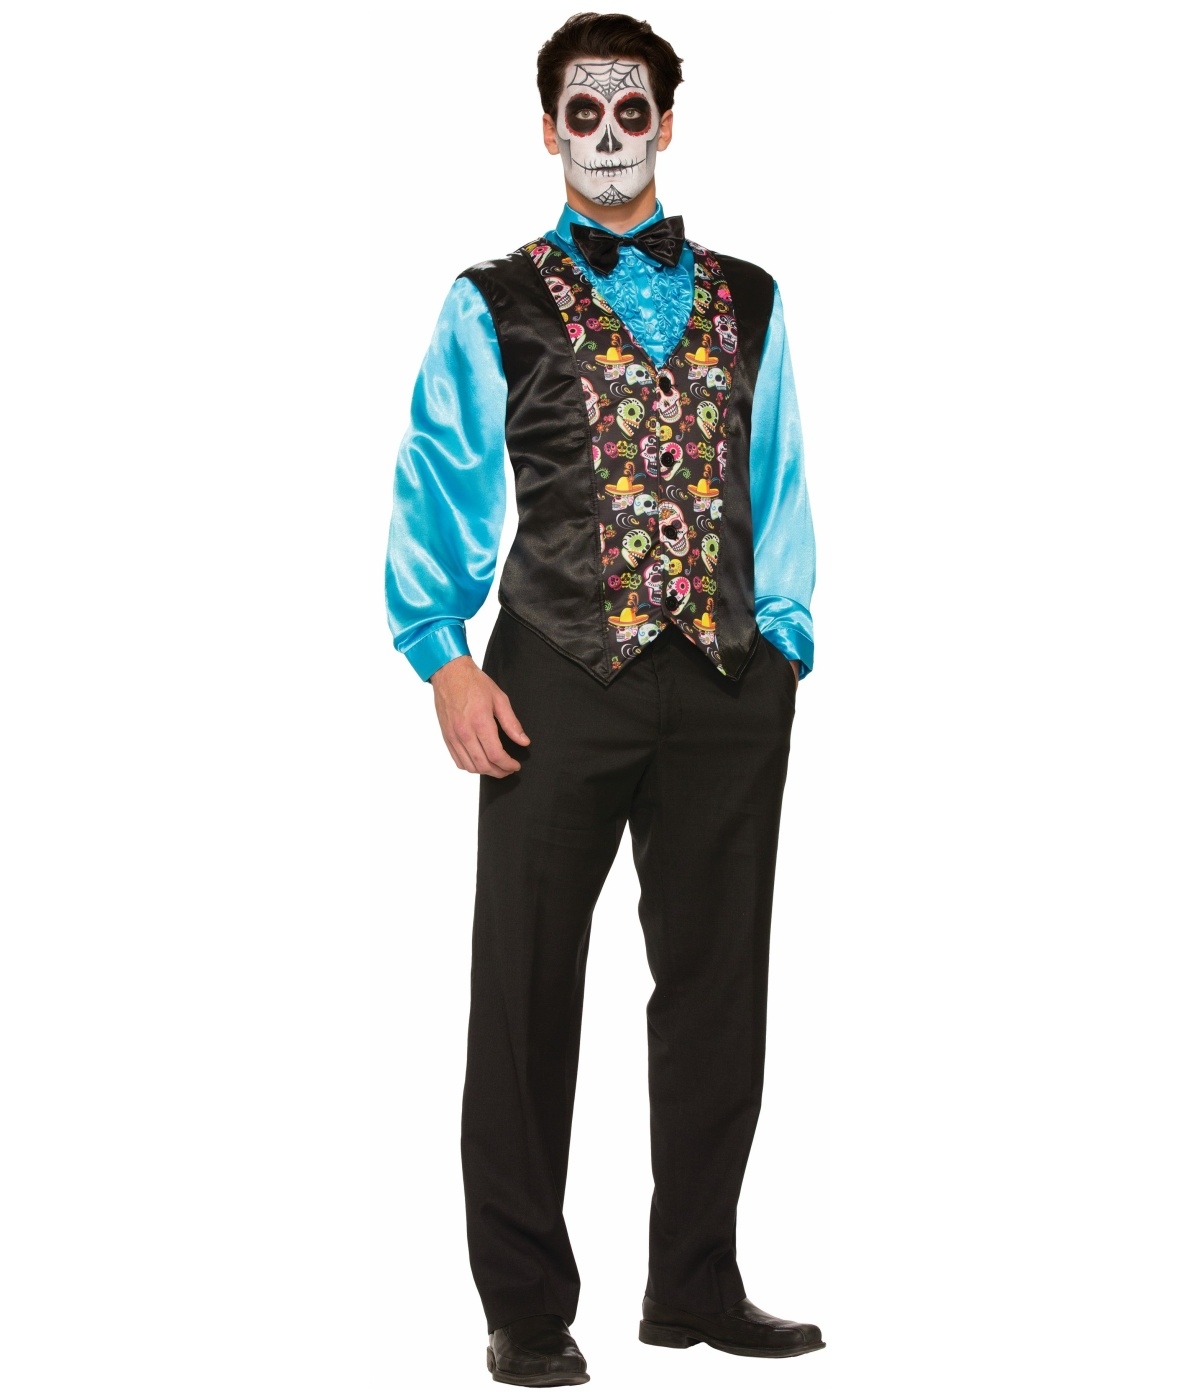 Day Of The Dead Costume Vest  sc 1 st  Wonder Costumes & Day of the Dead Costume Vest - International Costumes